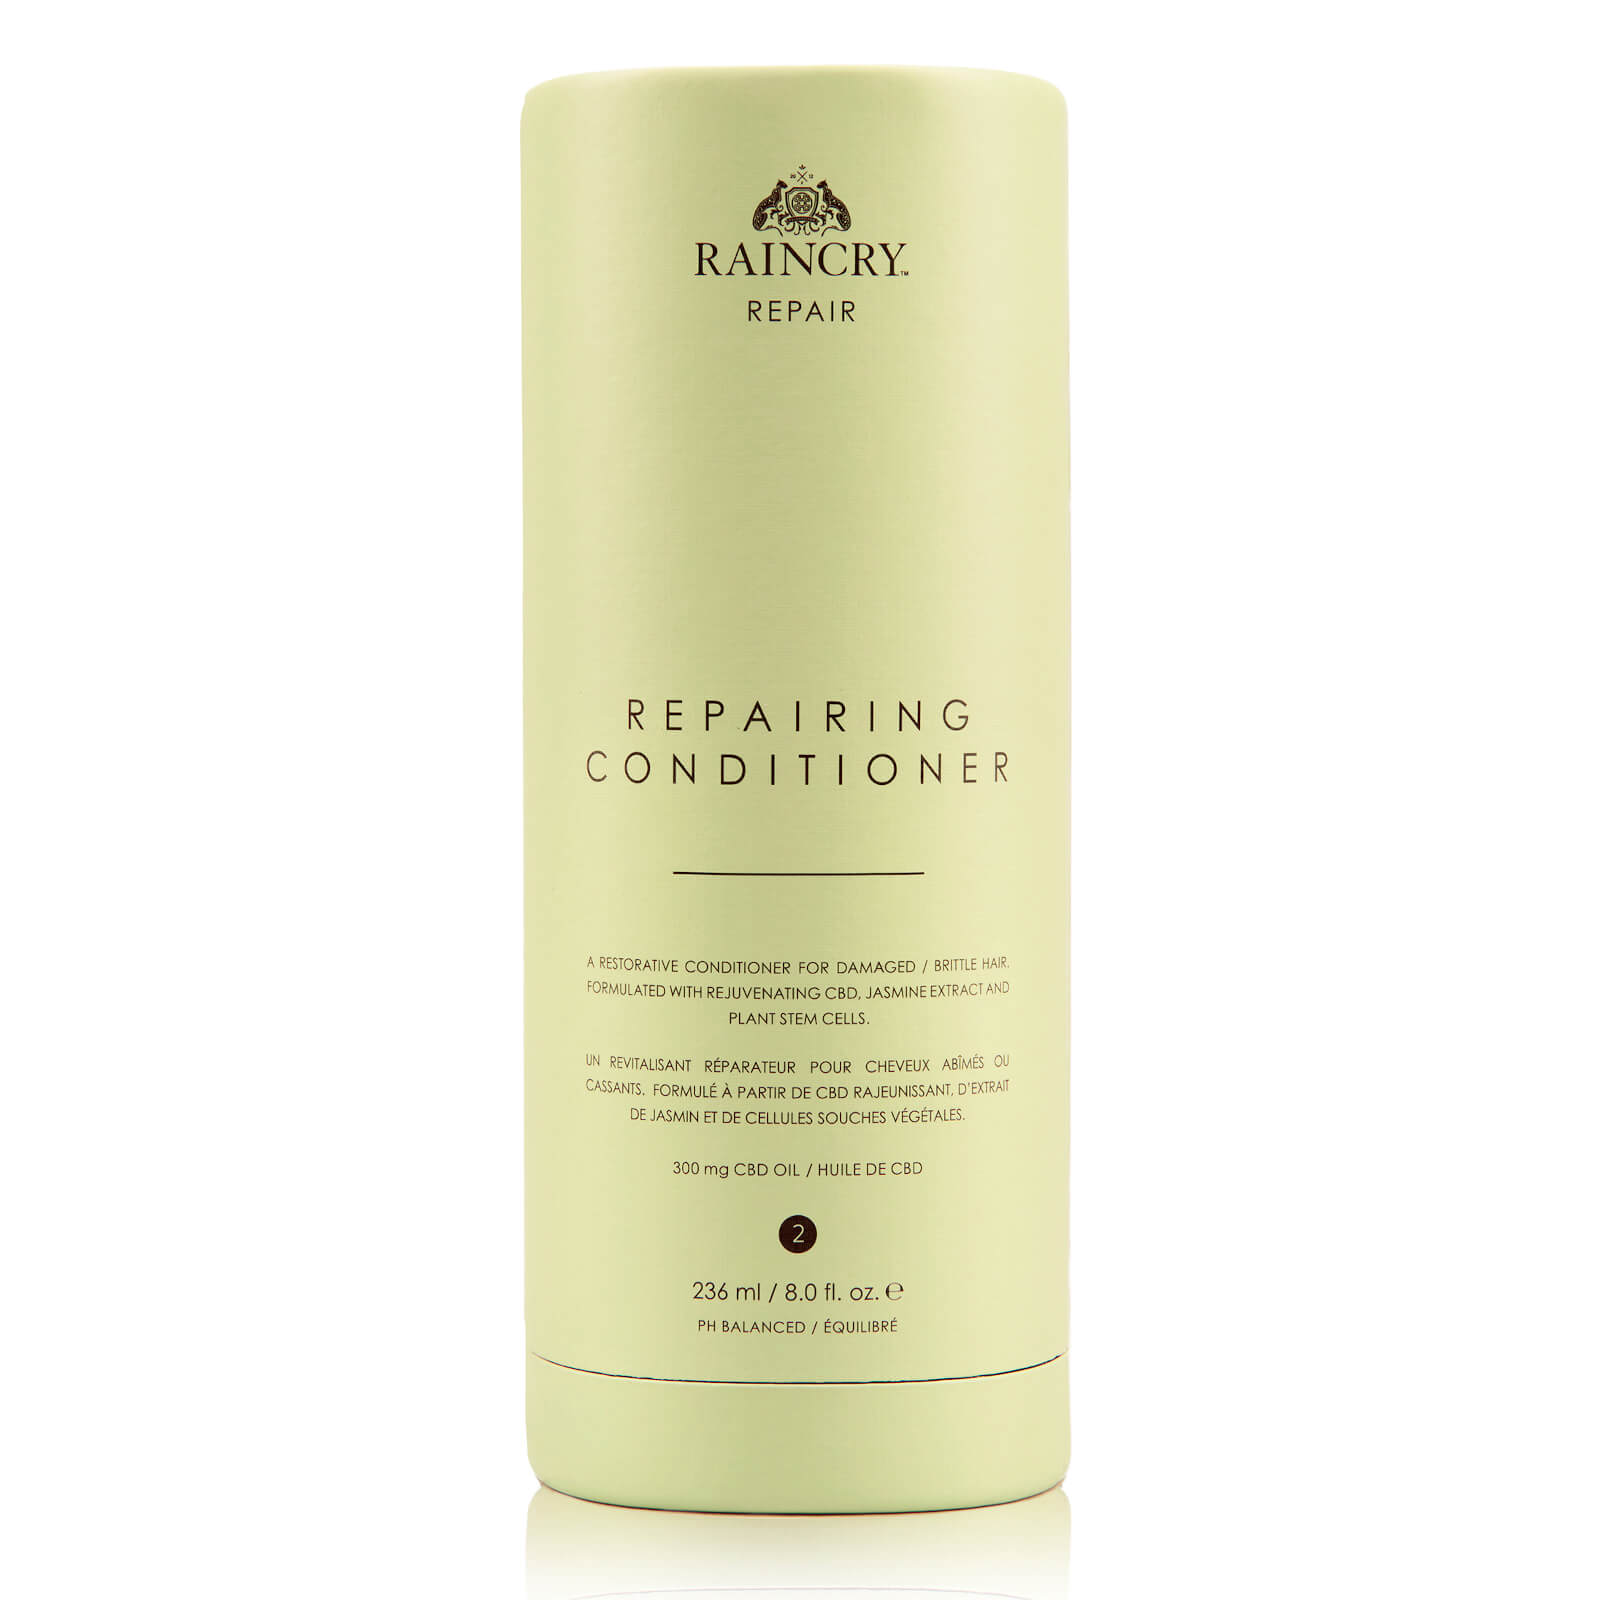 Watch a story about RAINCRY REPAIRING CONDITIONER 8.0 FL. OZ